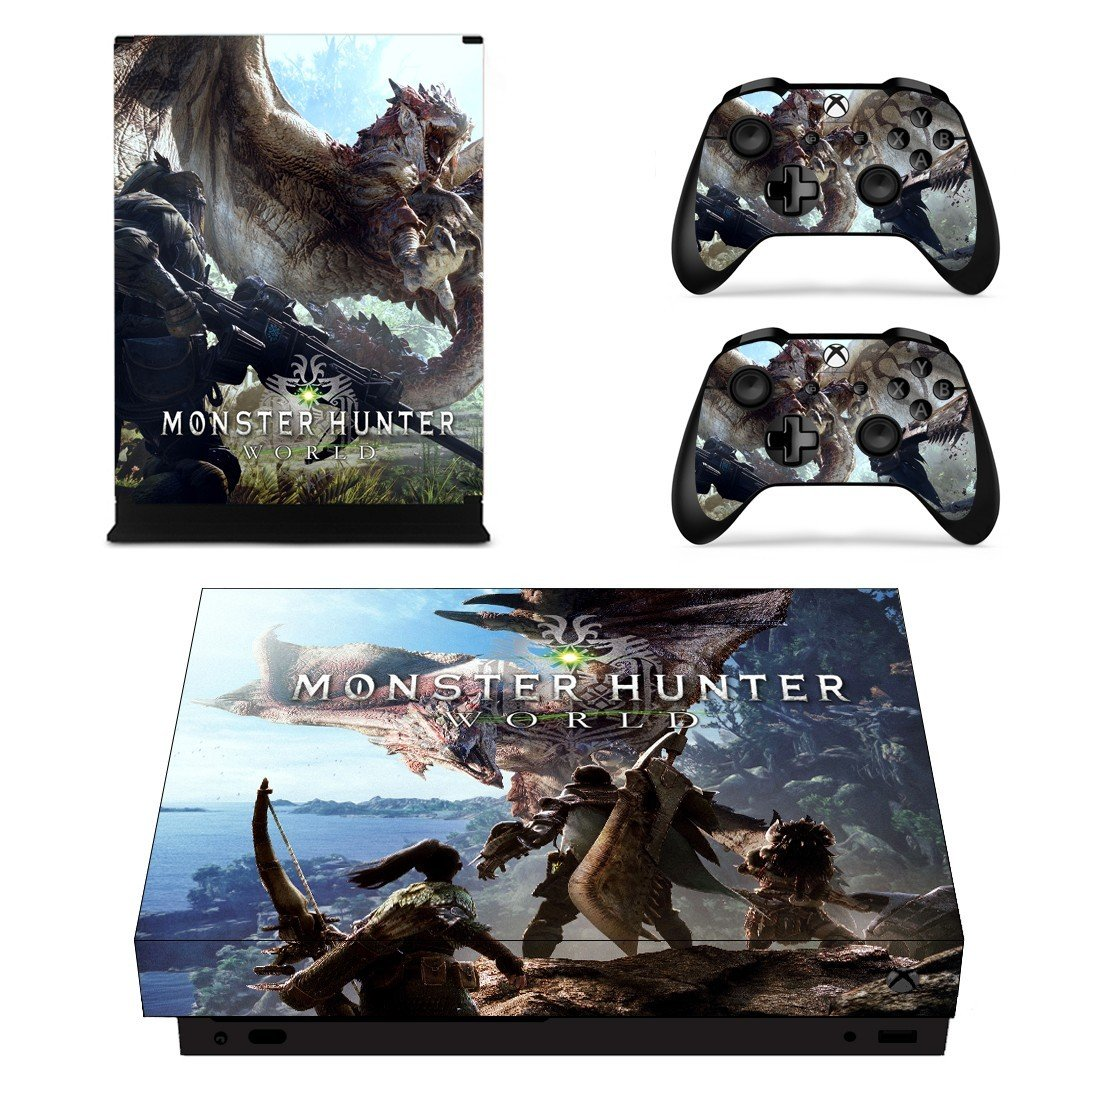 Monster Hunter world decal skin sticker for Xbox One X console and controllers